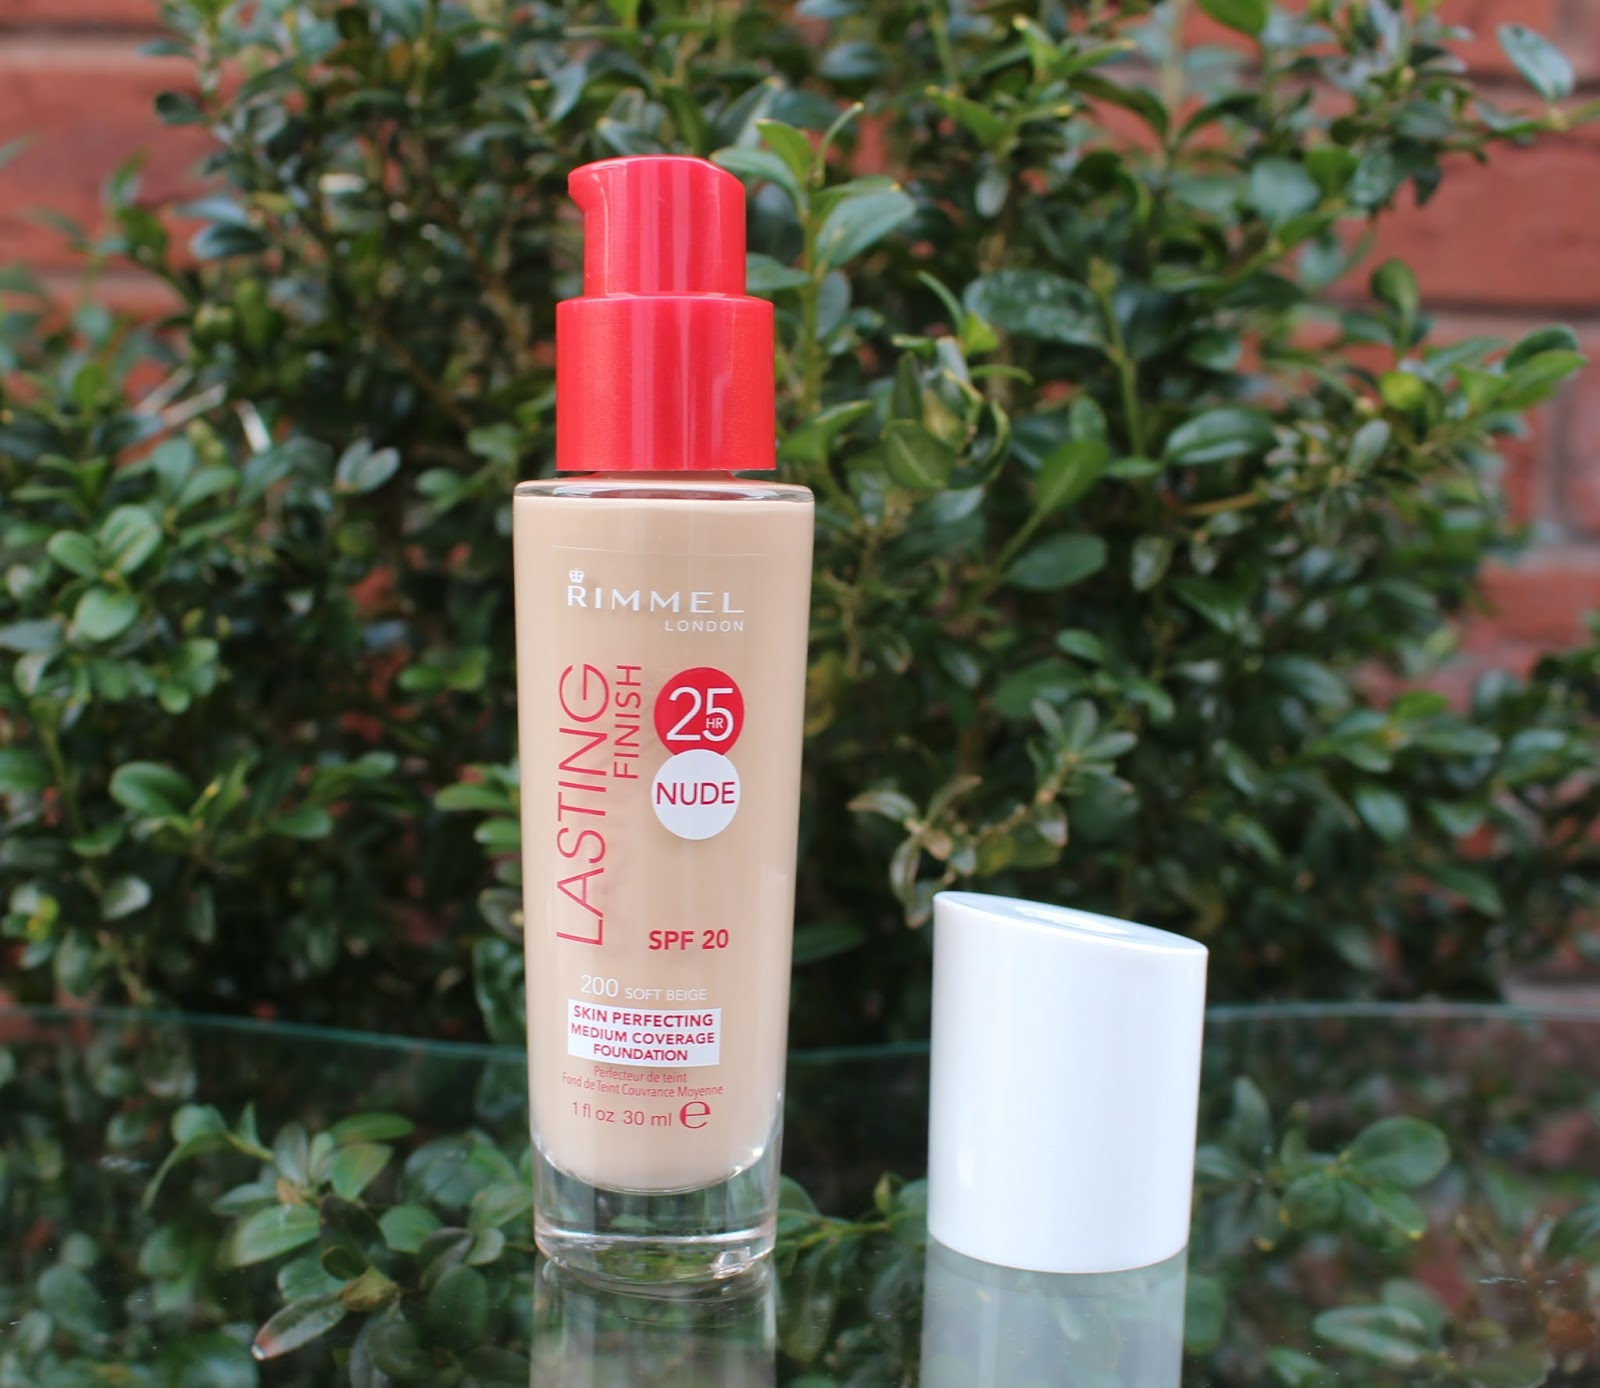 Rimmel Lasting Finish 25 hour Nude Foundation, Rimmel, Rimmel foundation, Long wearing foundation, nars sheer glow dupe, drugstore foundation, review, through chelsea's eyes,